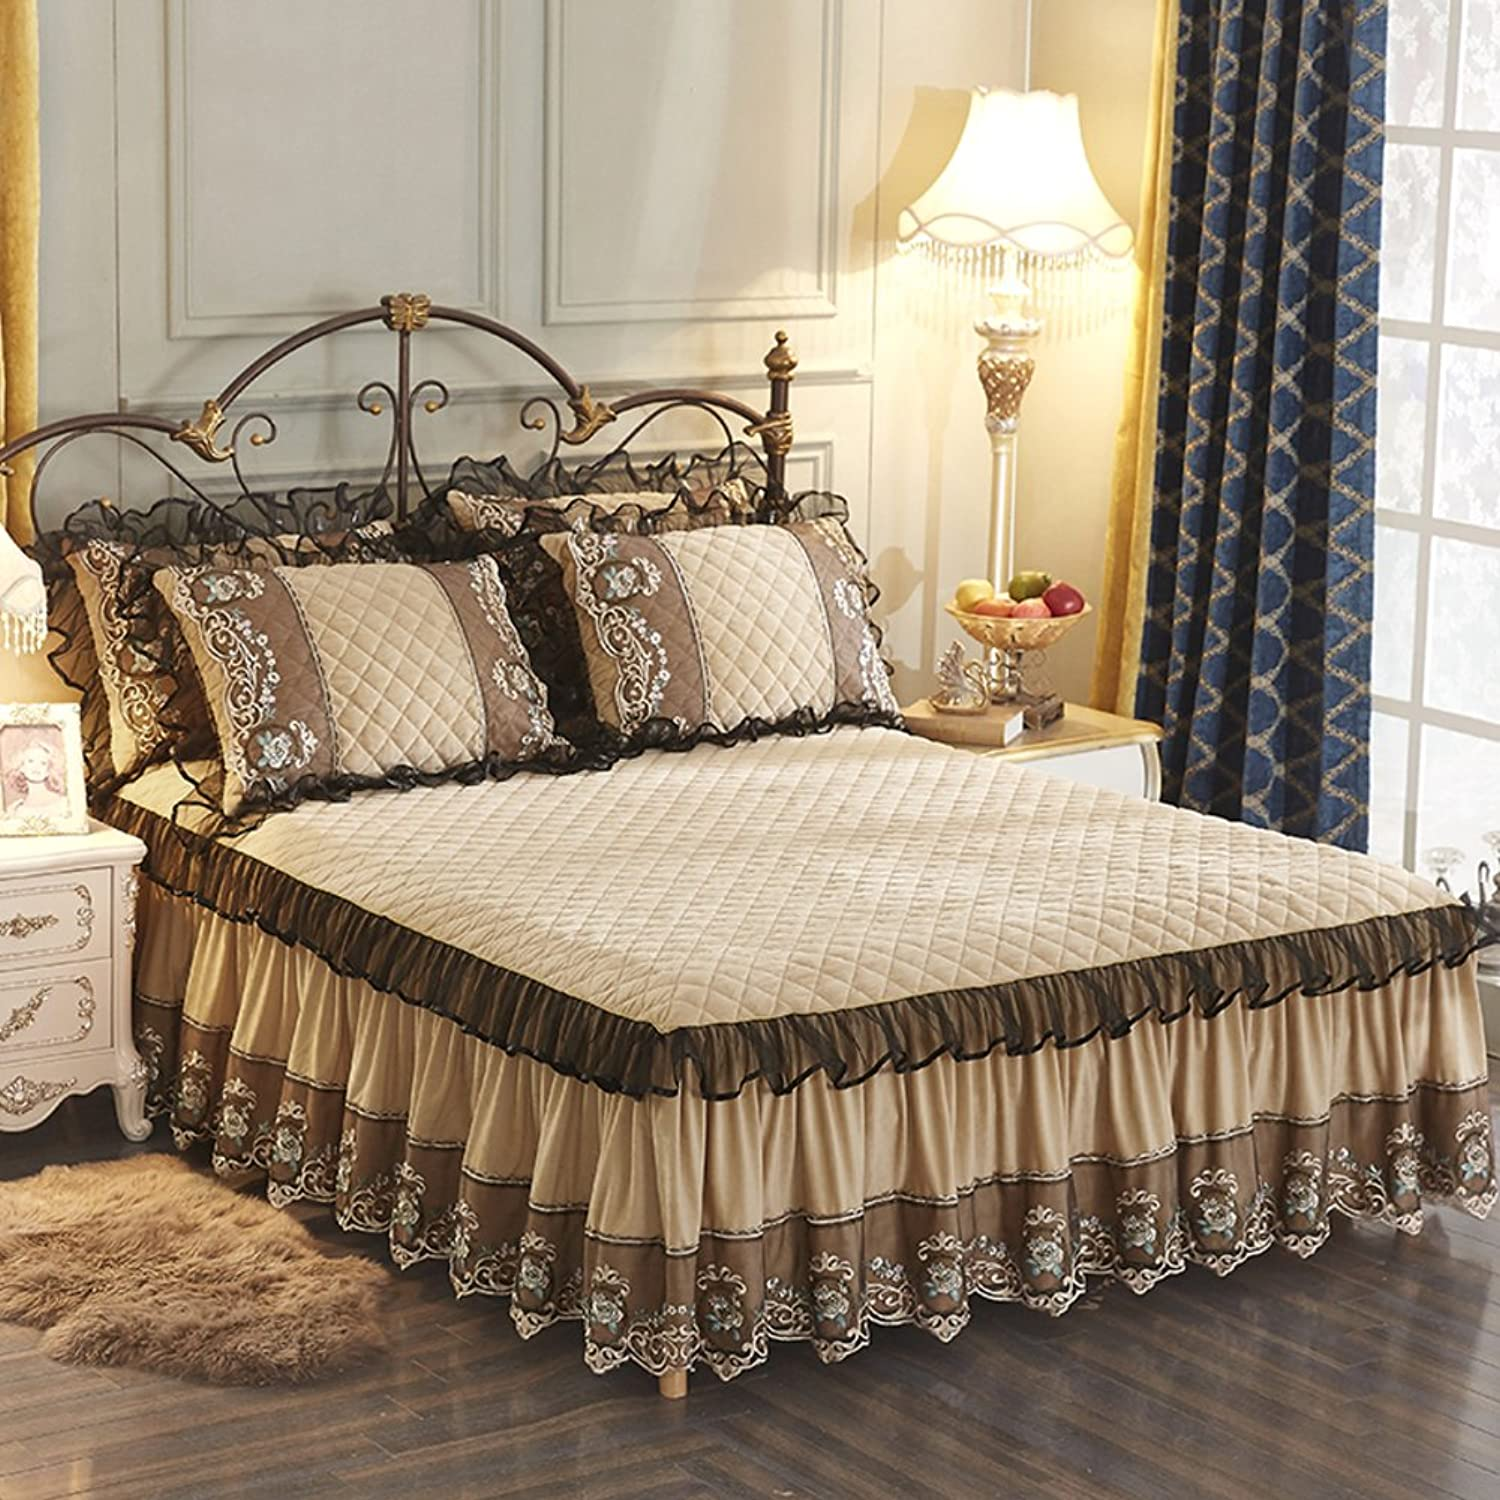 European Lace Bed Skirt,Warm Non-Slip Bed Skirt Thick Quilted Bed Cover Single Piece 2.0m1.8m Wrinkle and Fade Resistant Bed Cover-D 180x220cm(71x87inch)